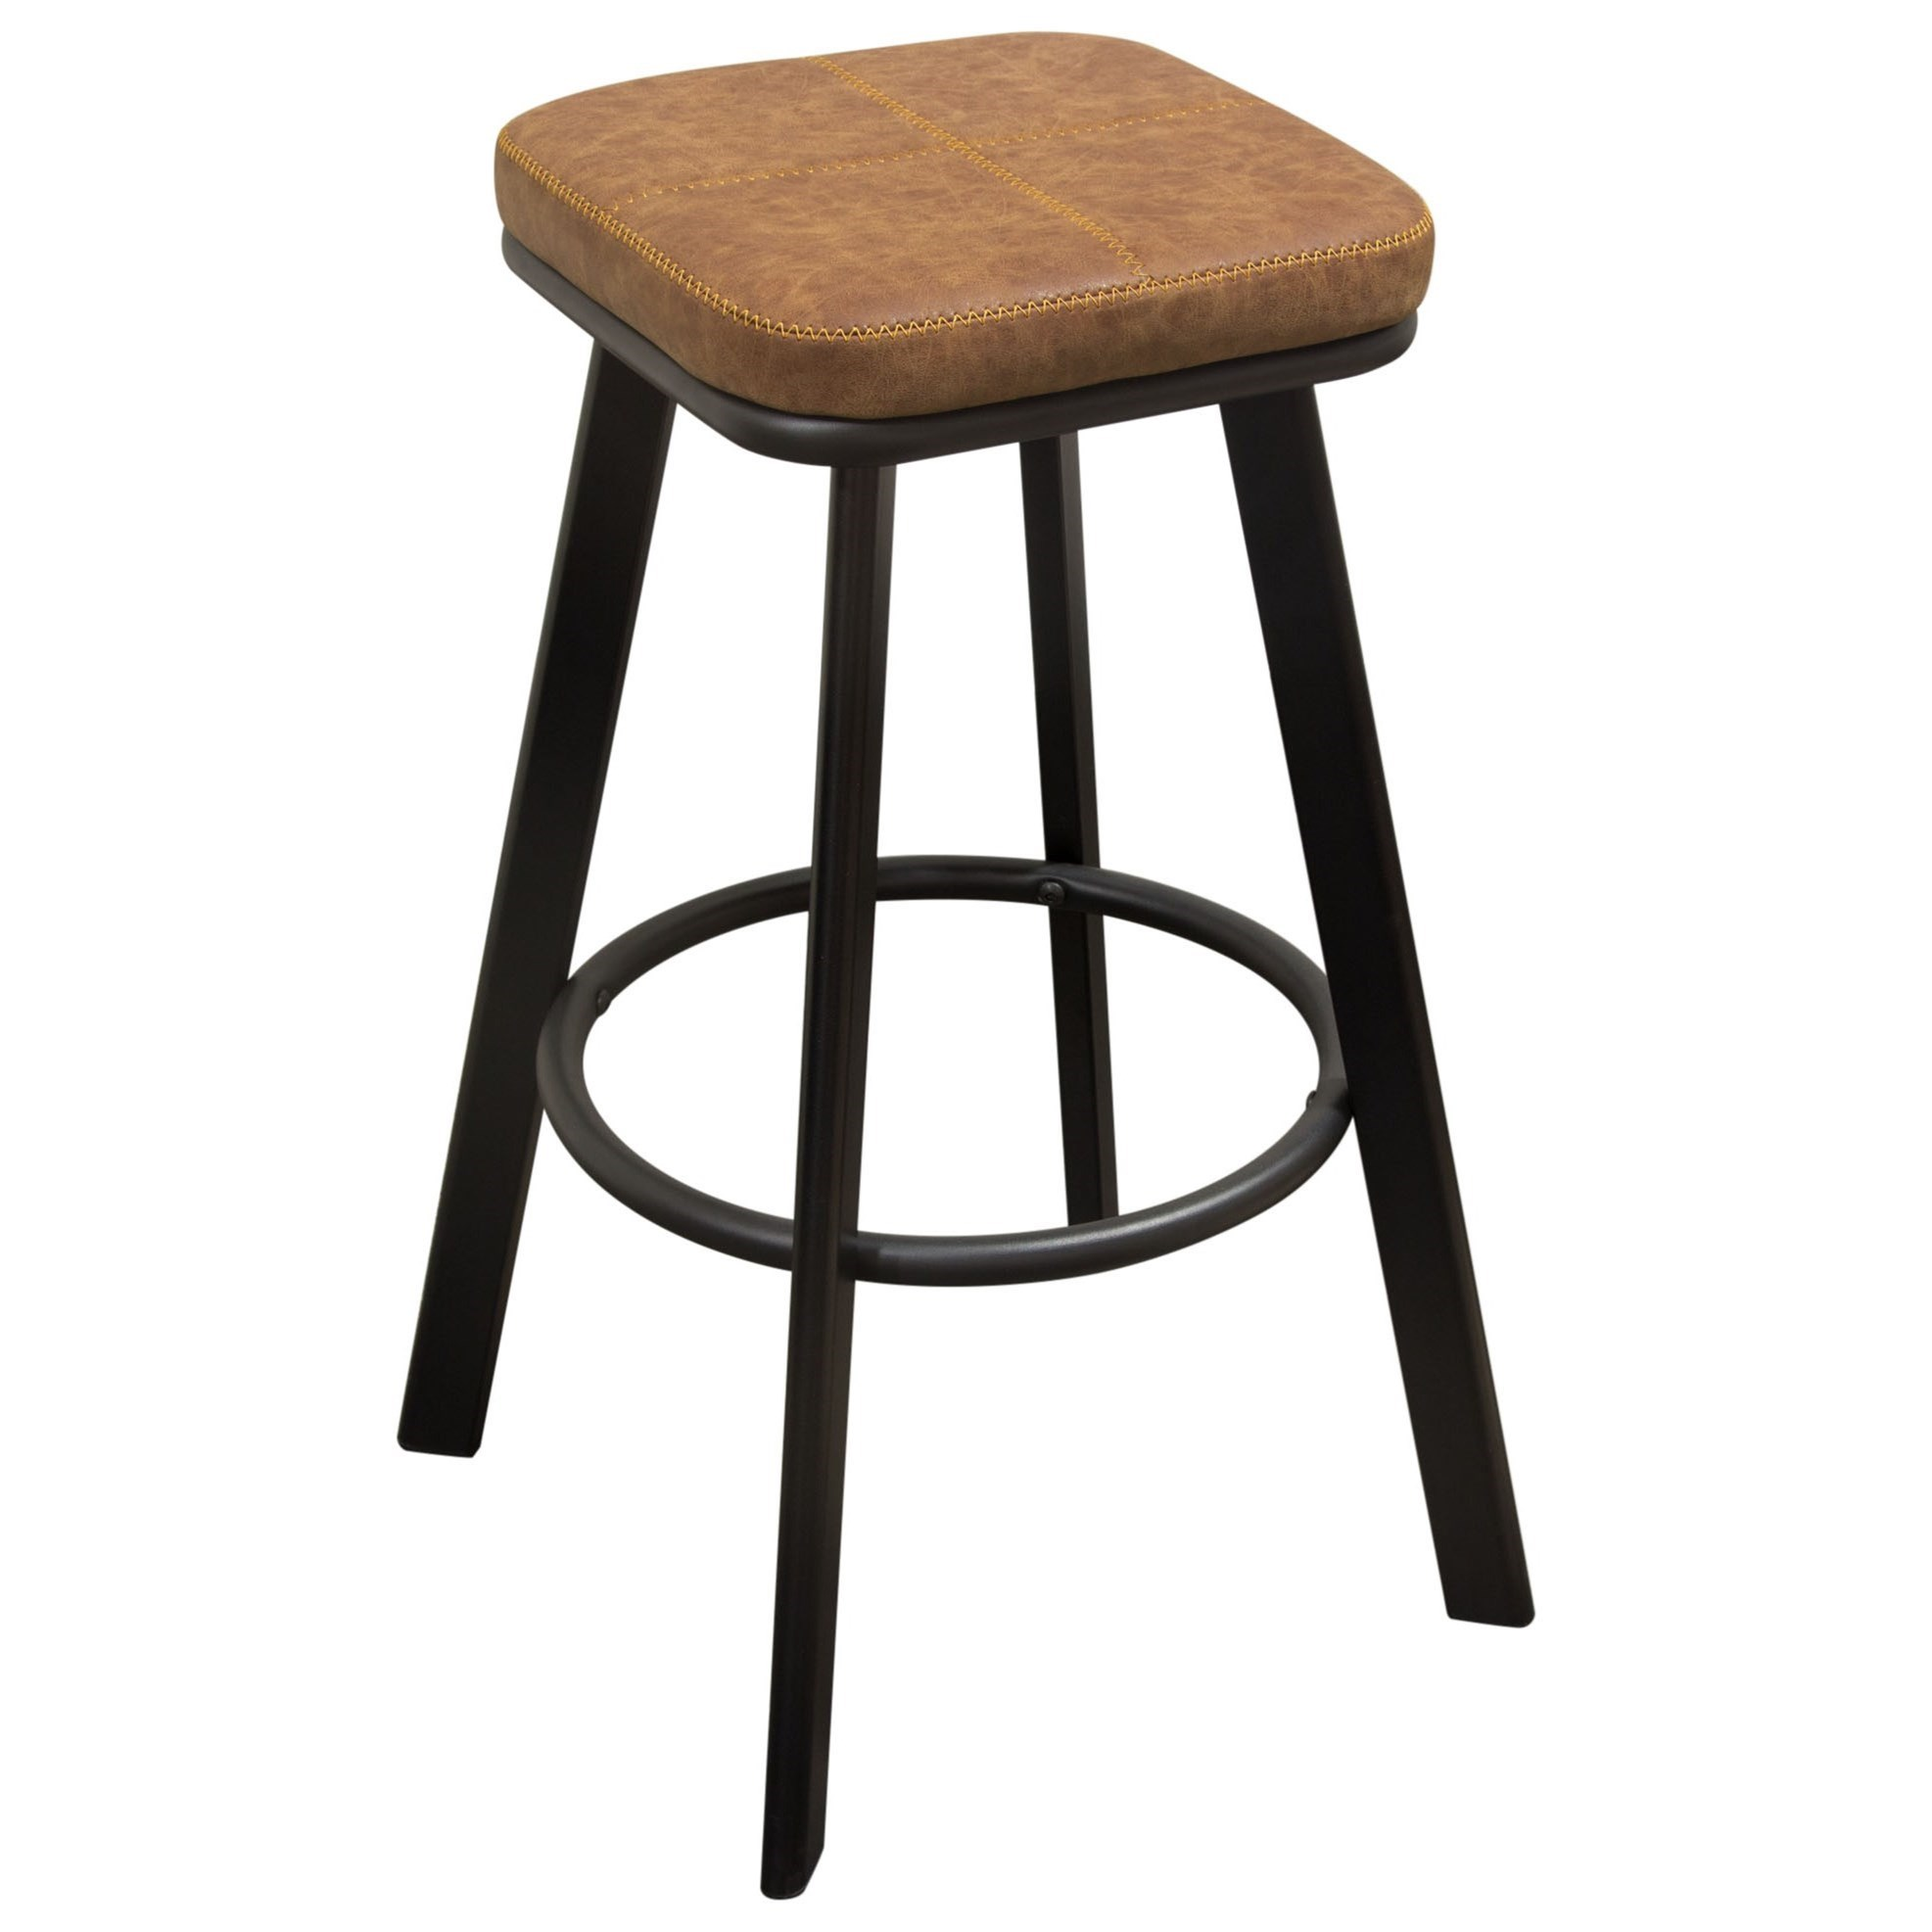 Set of Two Stools